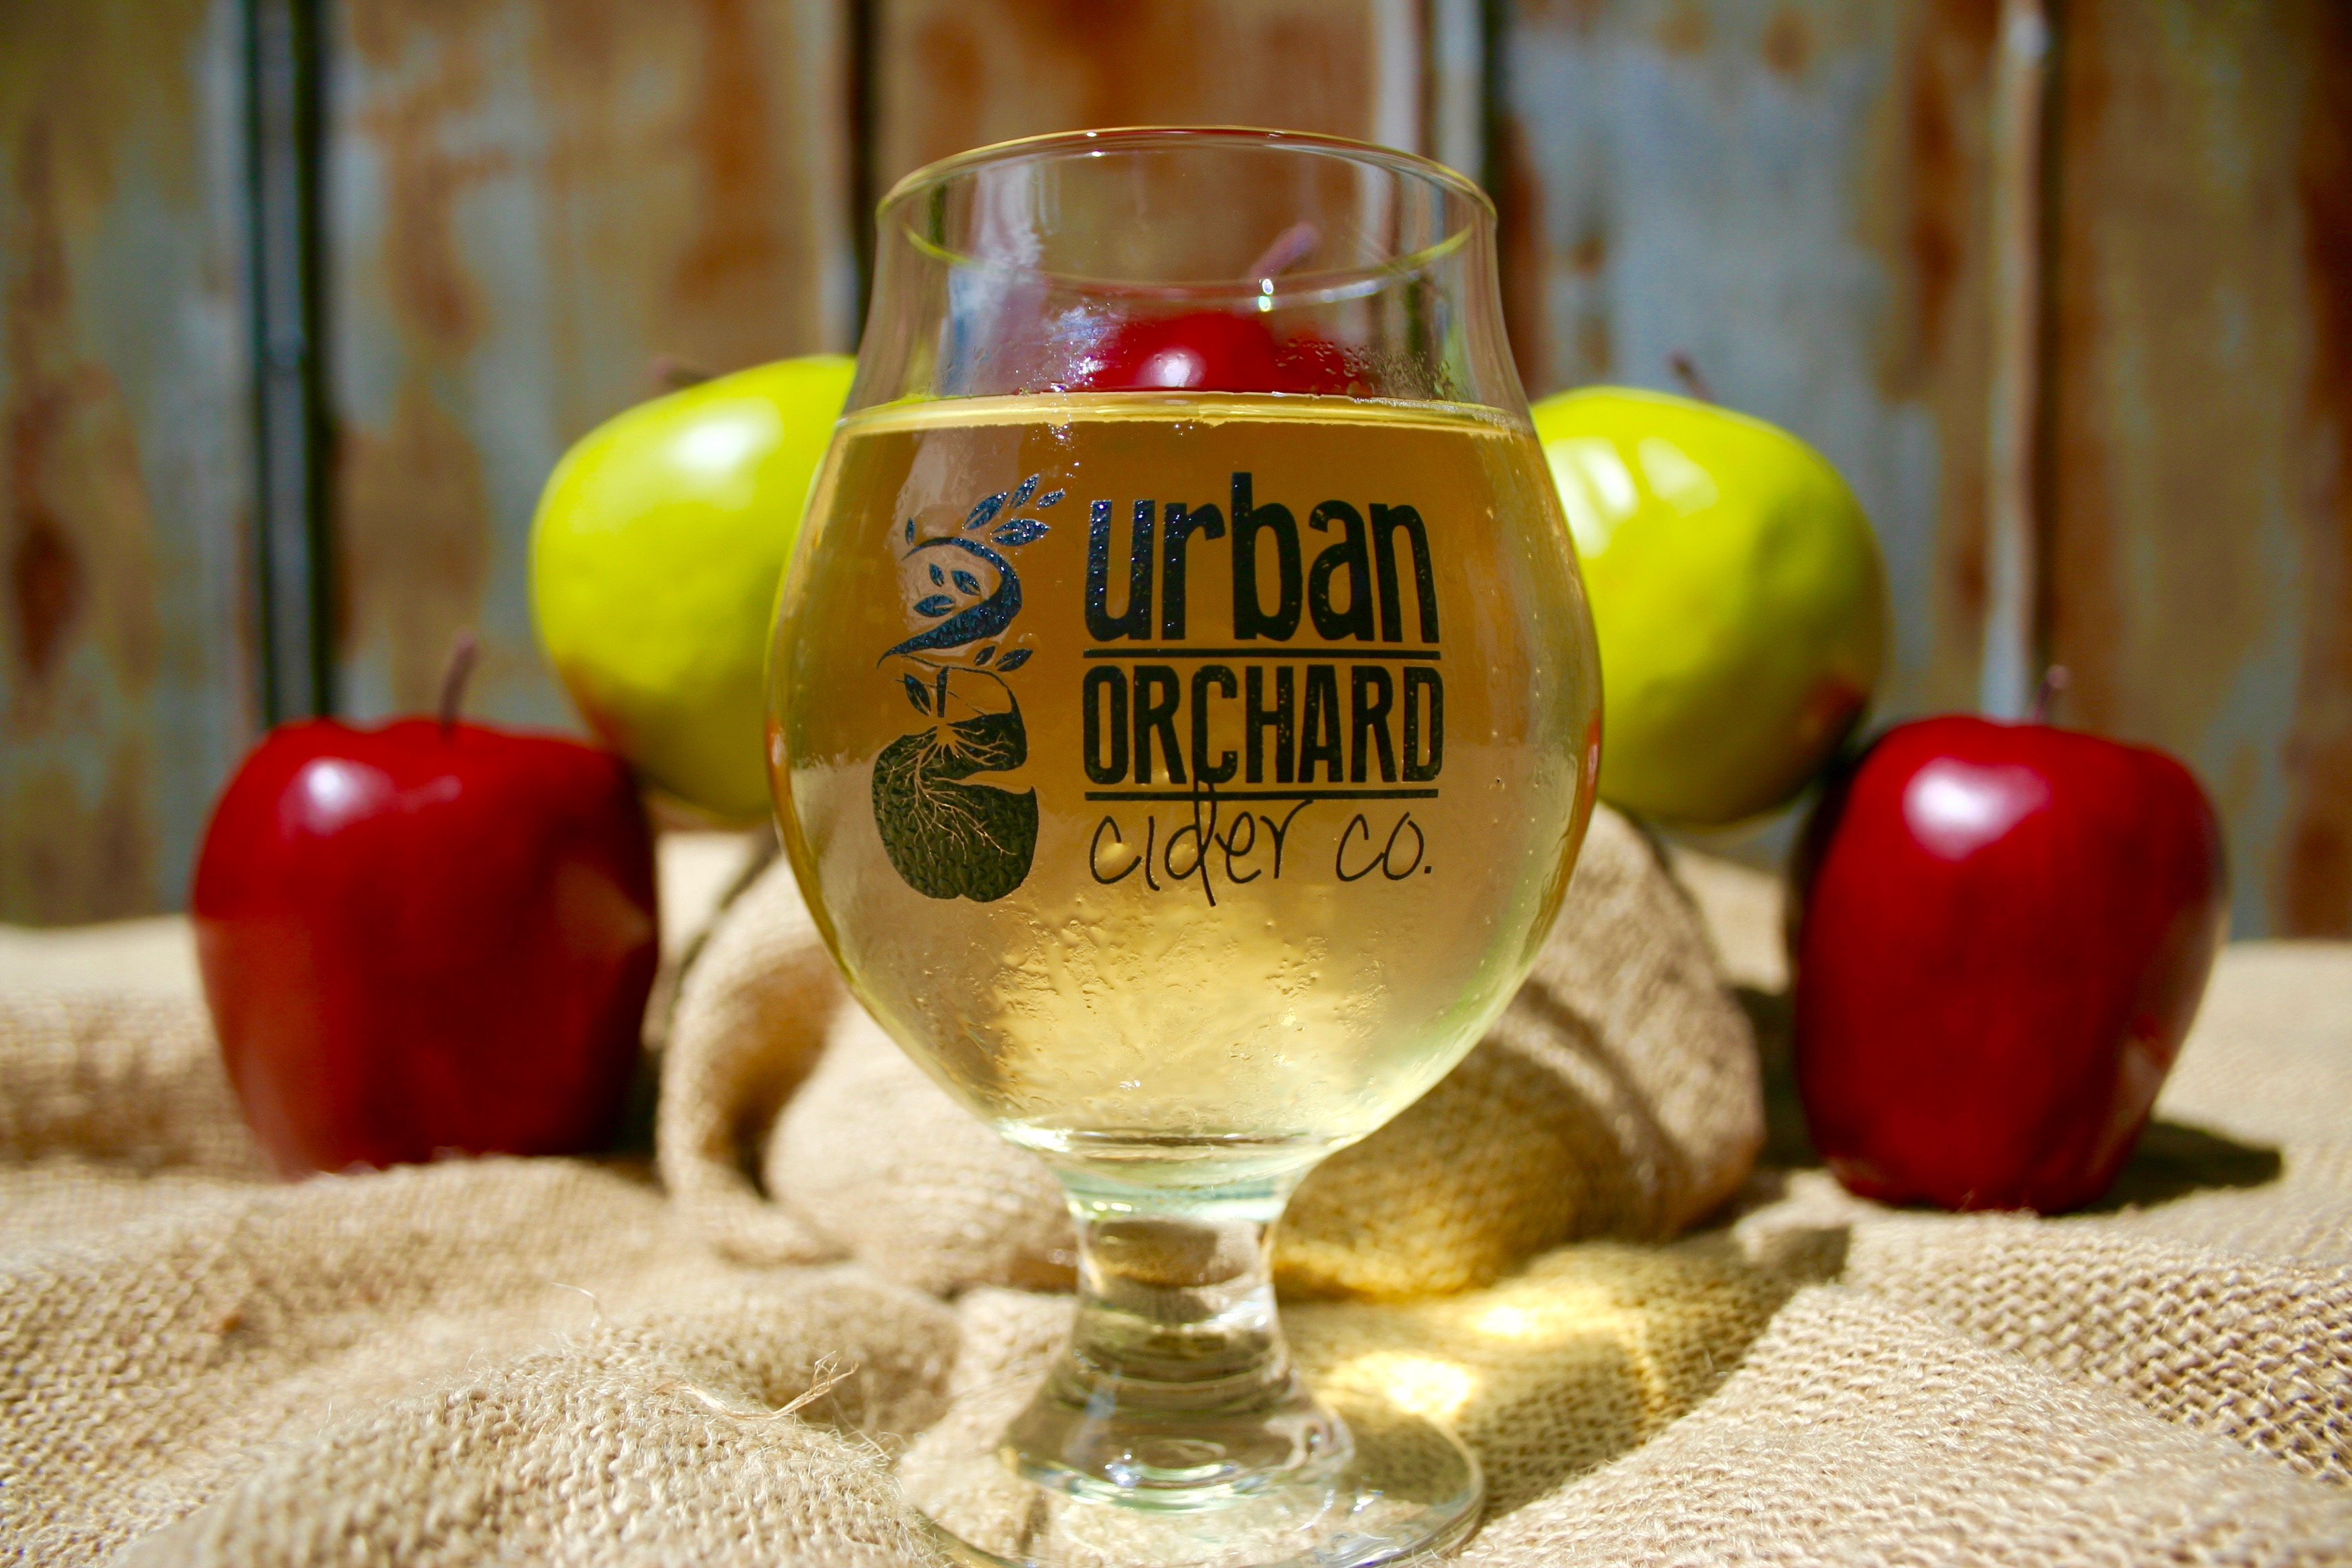 Local Cideries Celebrate Fall Fruit, Industry Growth and CiderFest NC post image